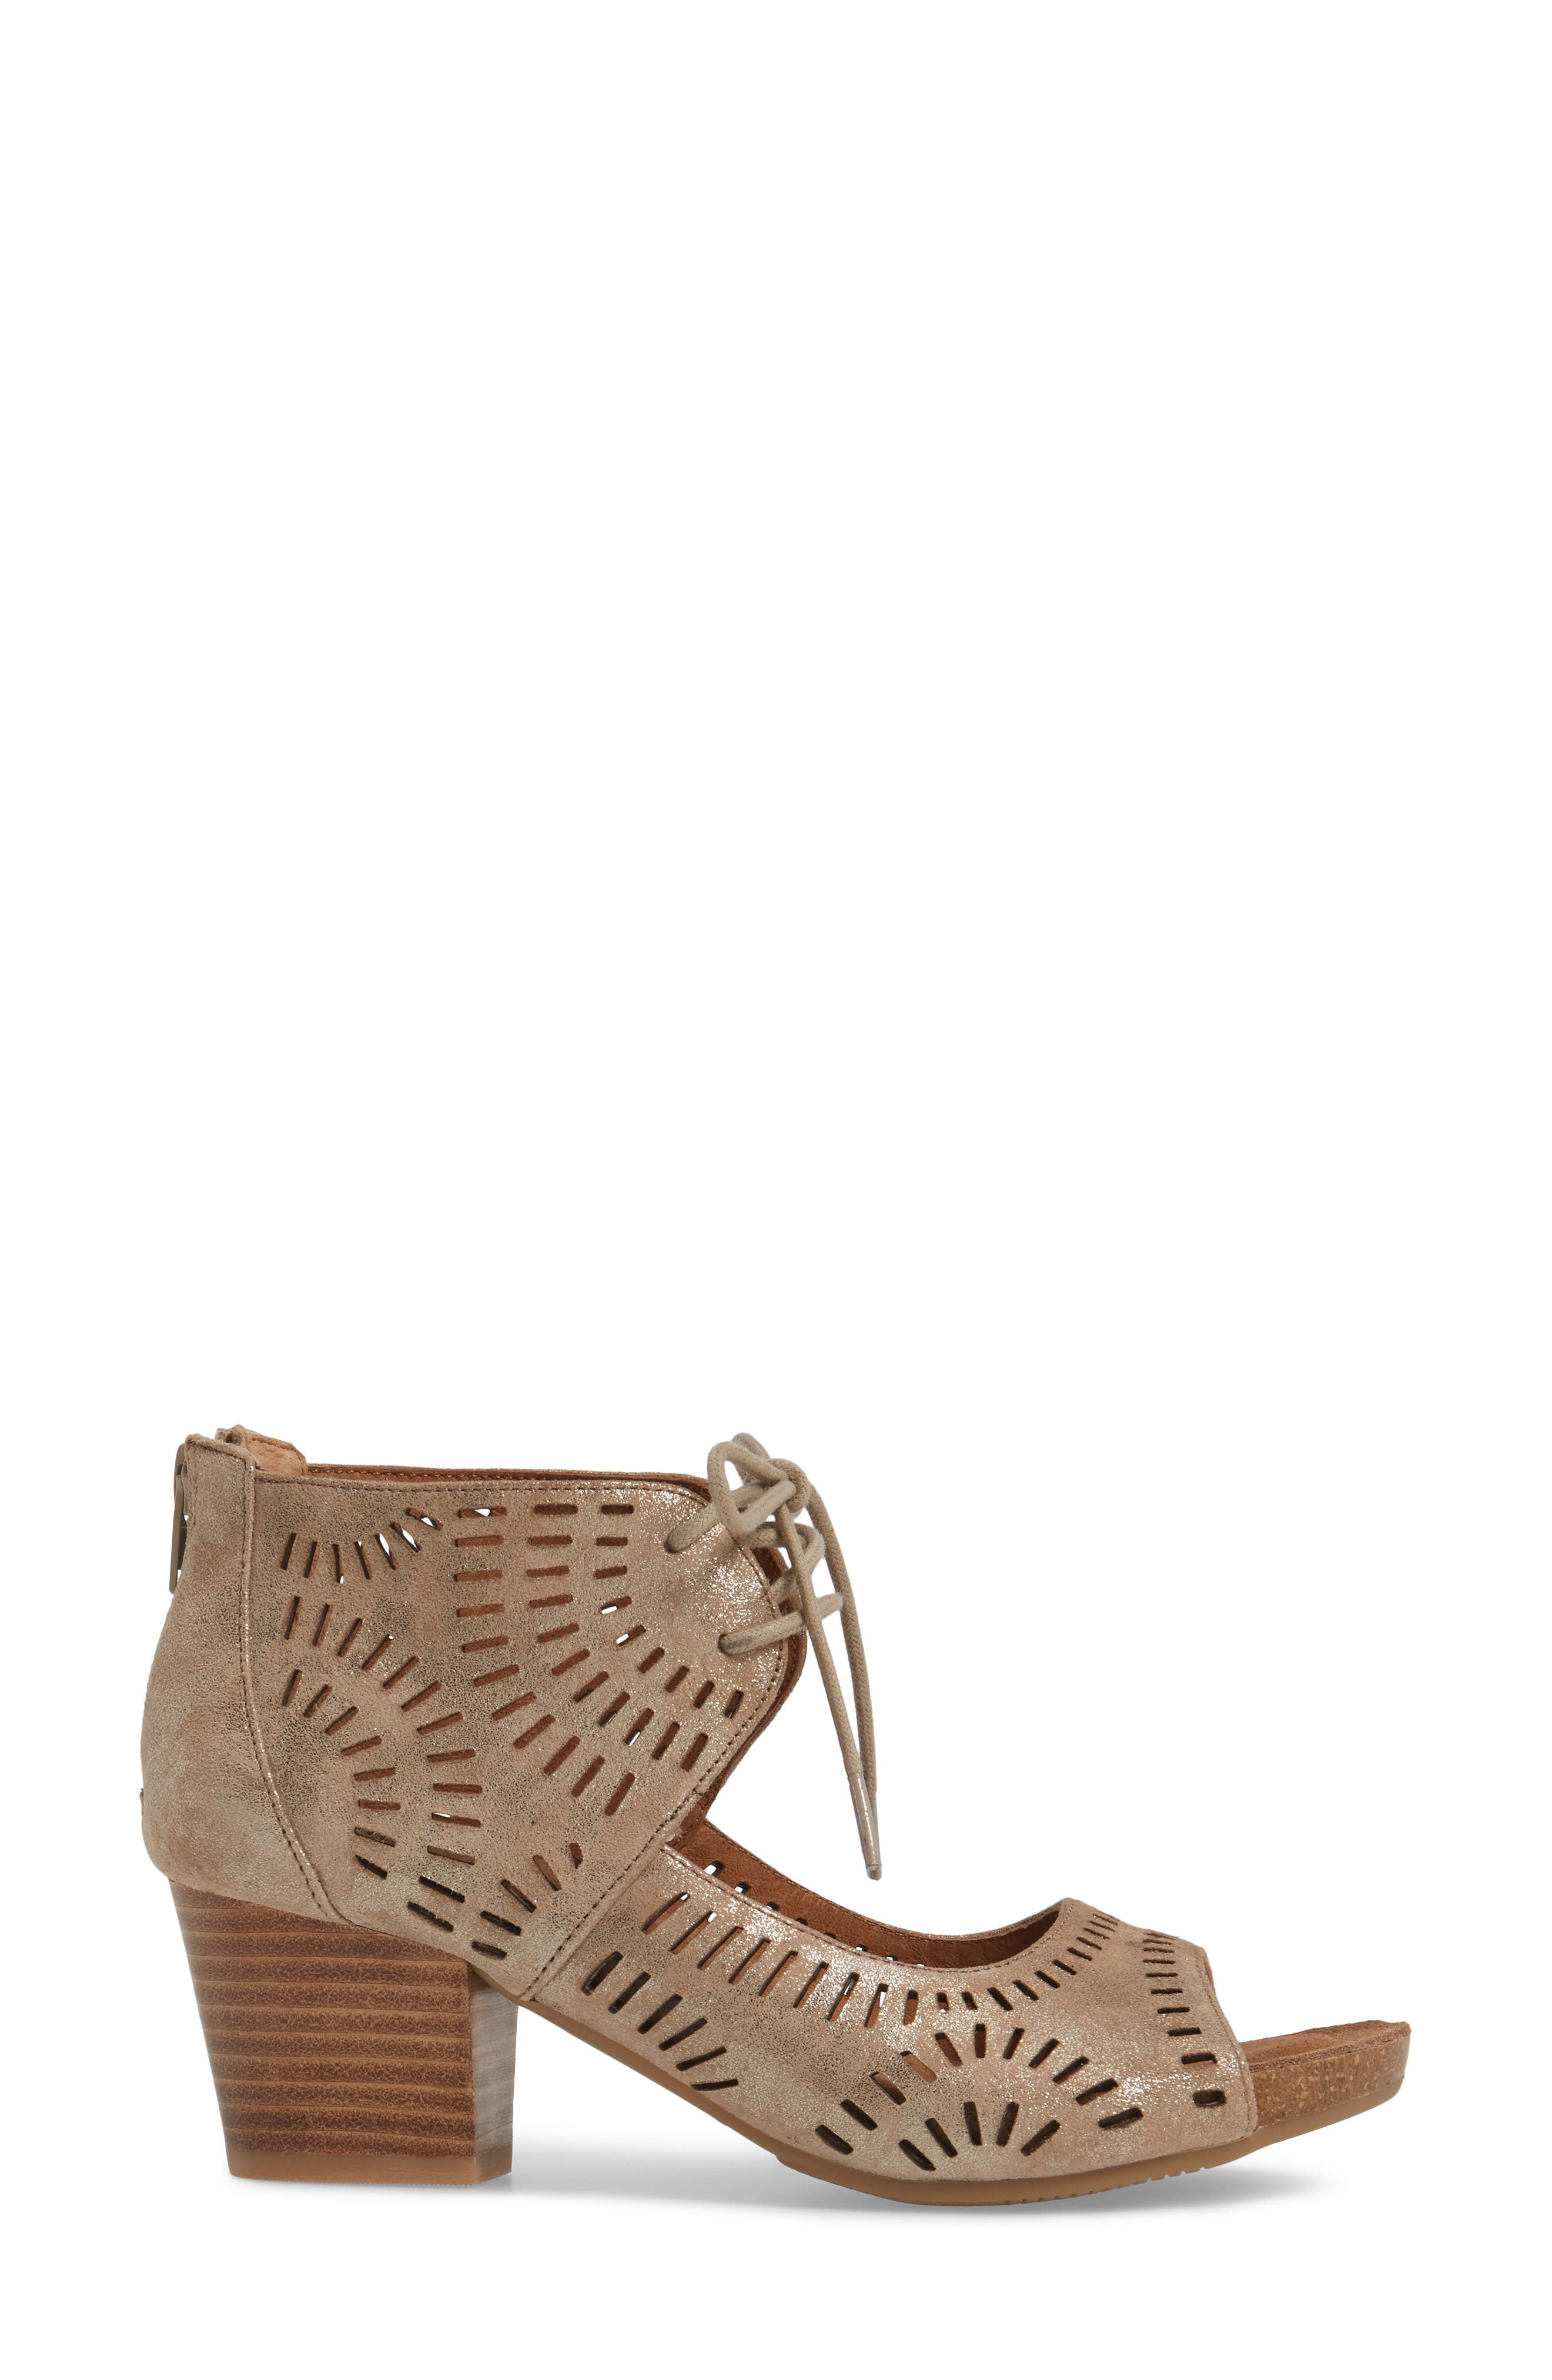 SÖFFT, Modesto Perforated Sandal, Alternate thumbnail 3, color, ANTHRACITE DISTRESSED FOIL